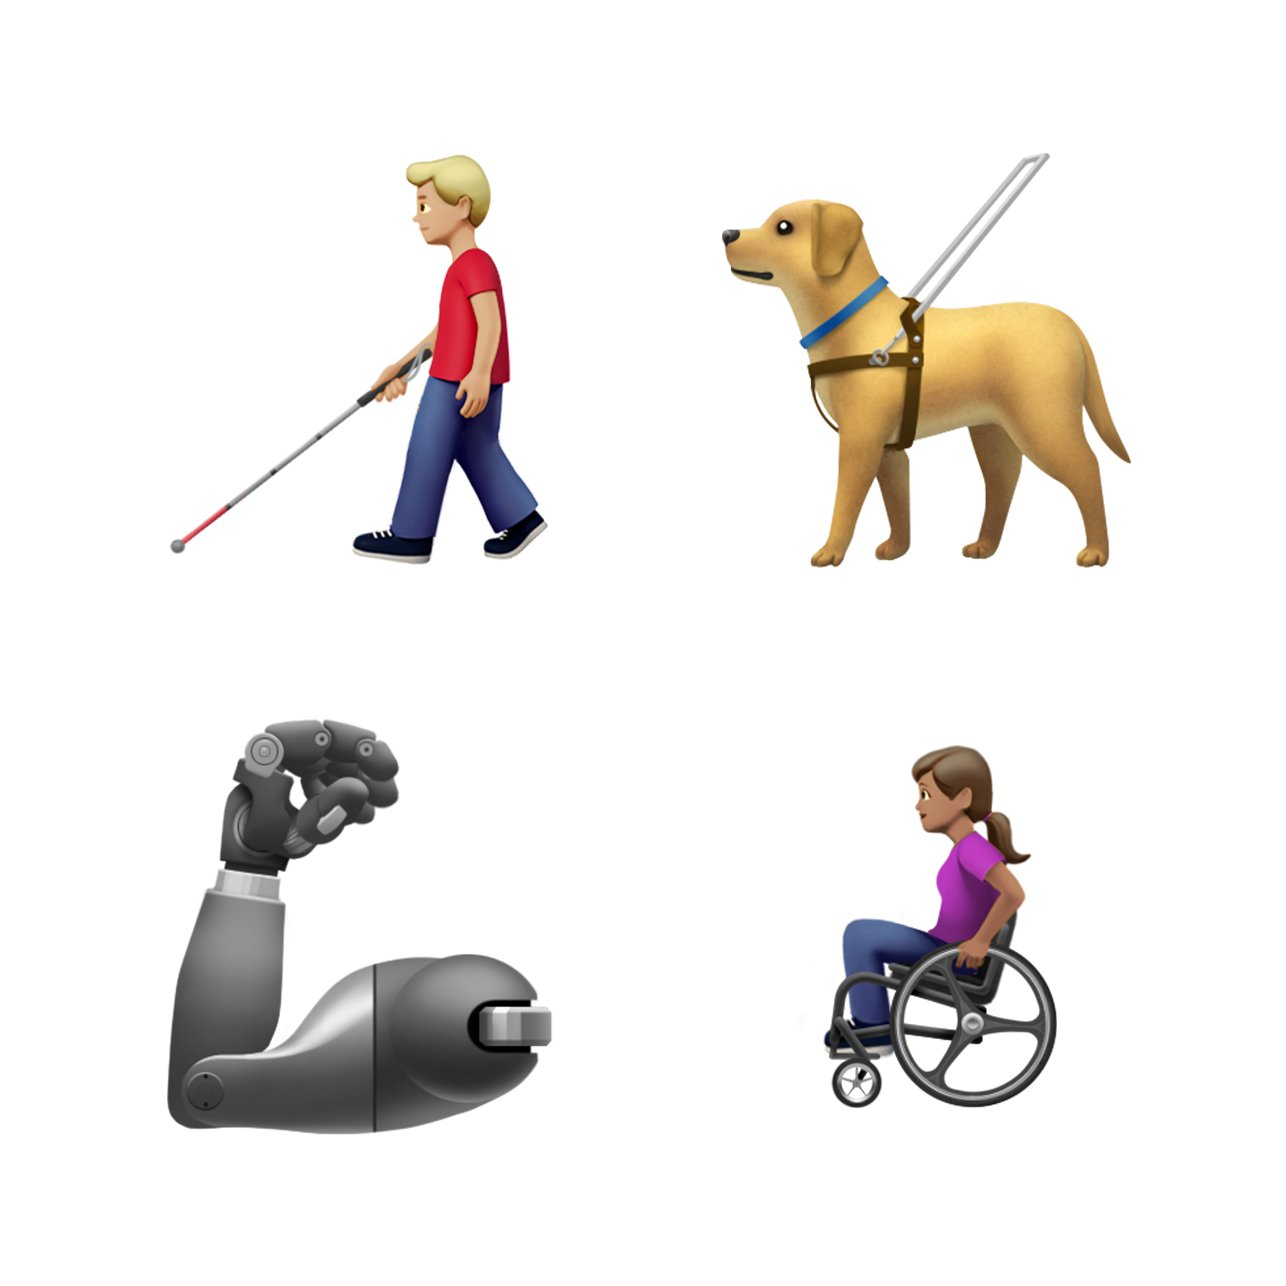 Apple's disability emojis (Download, Apple, Inc.)